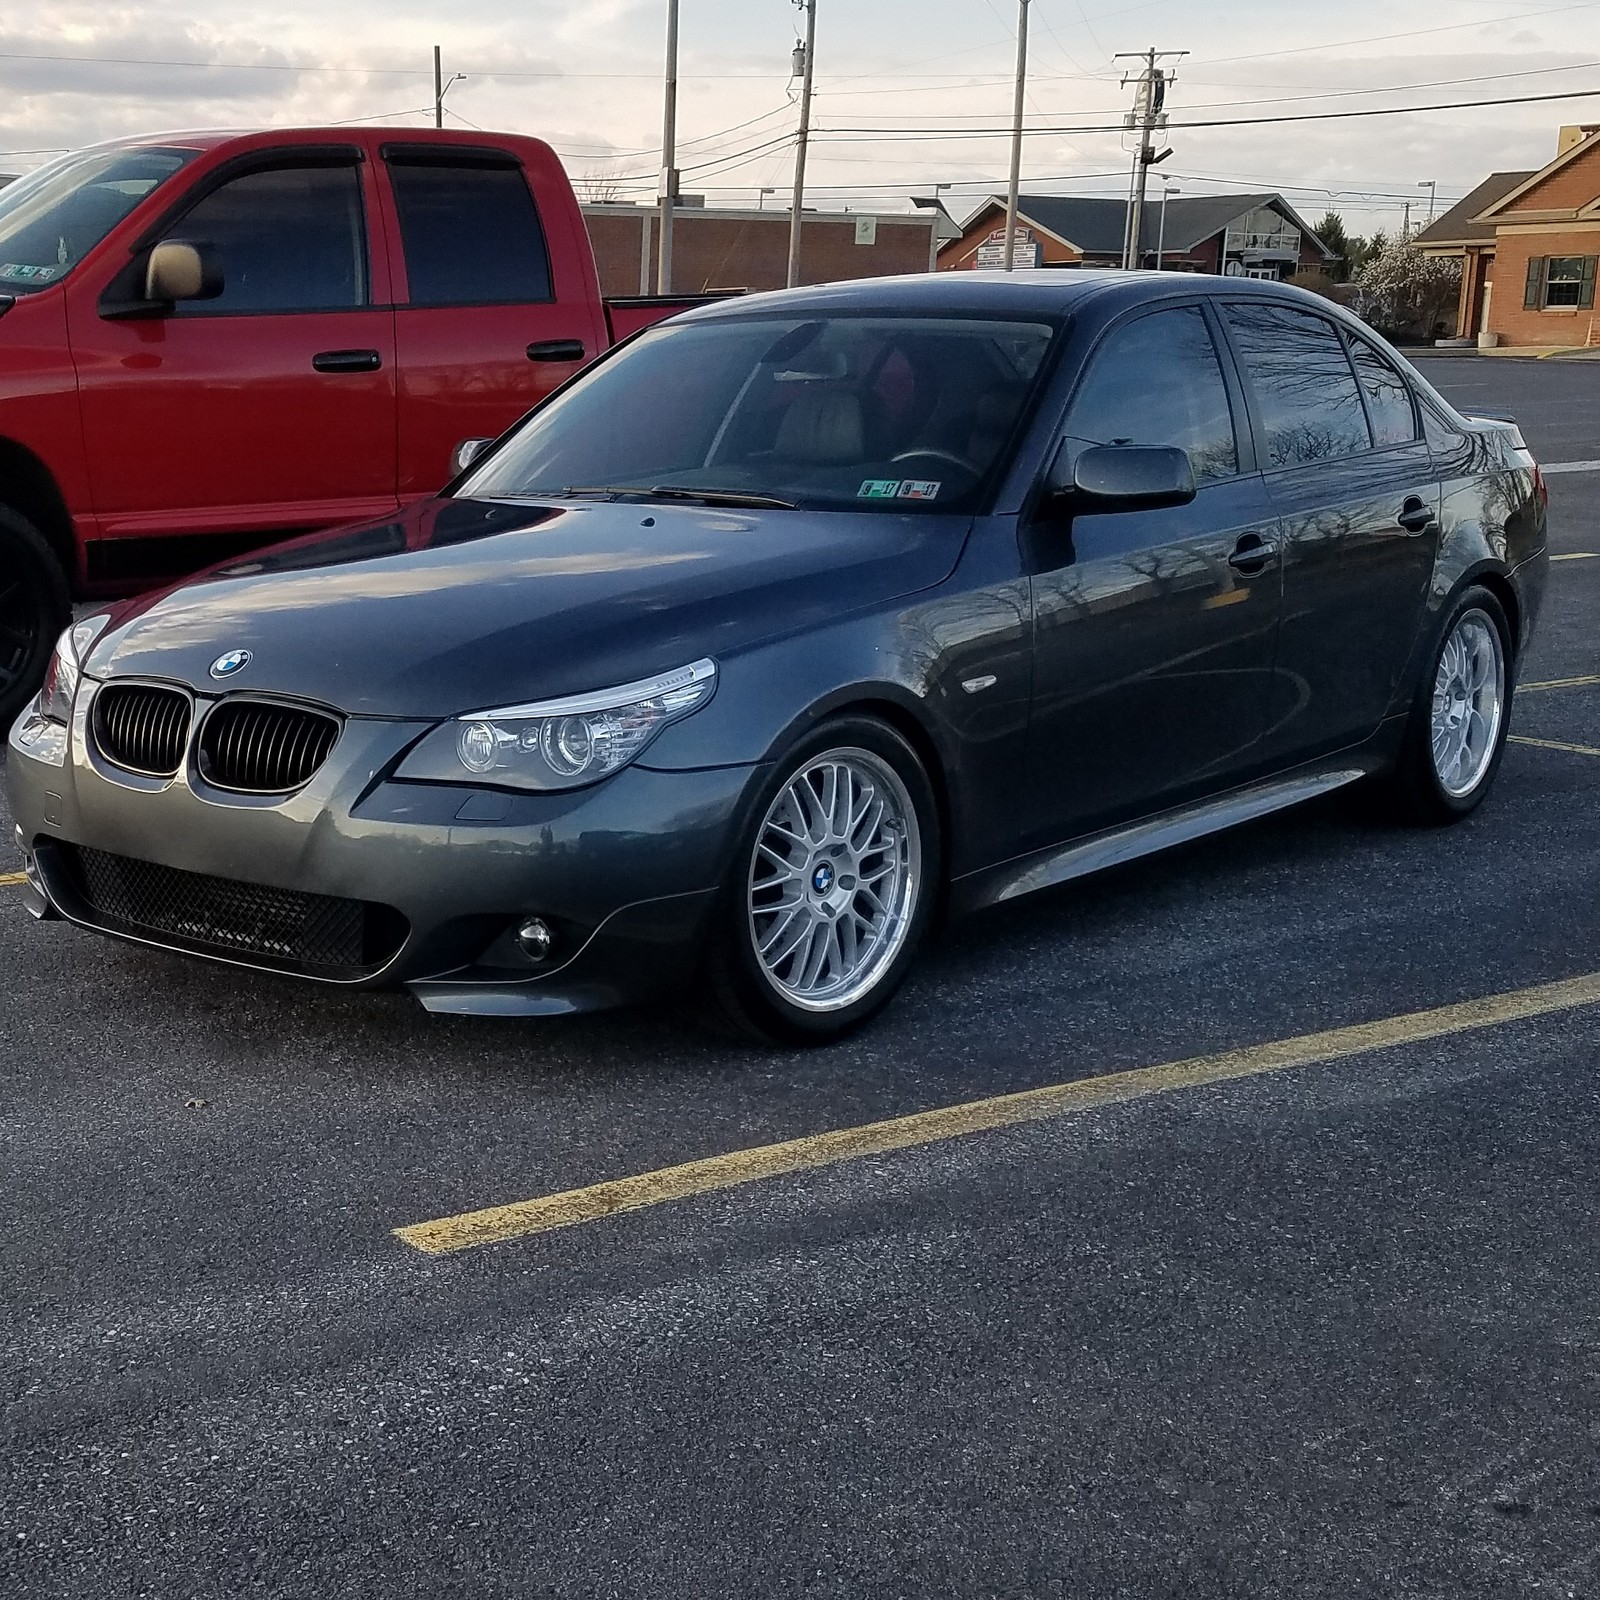 grey 2010 BMW 535xi